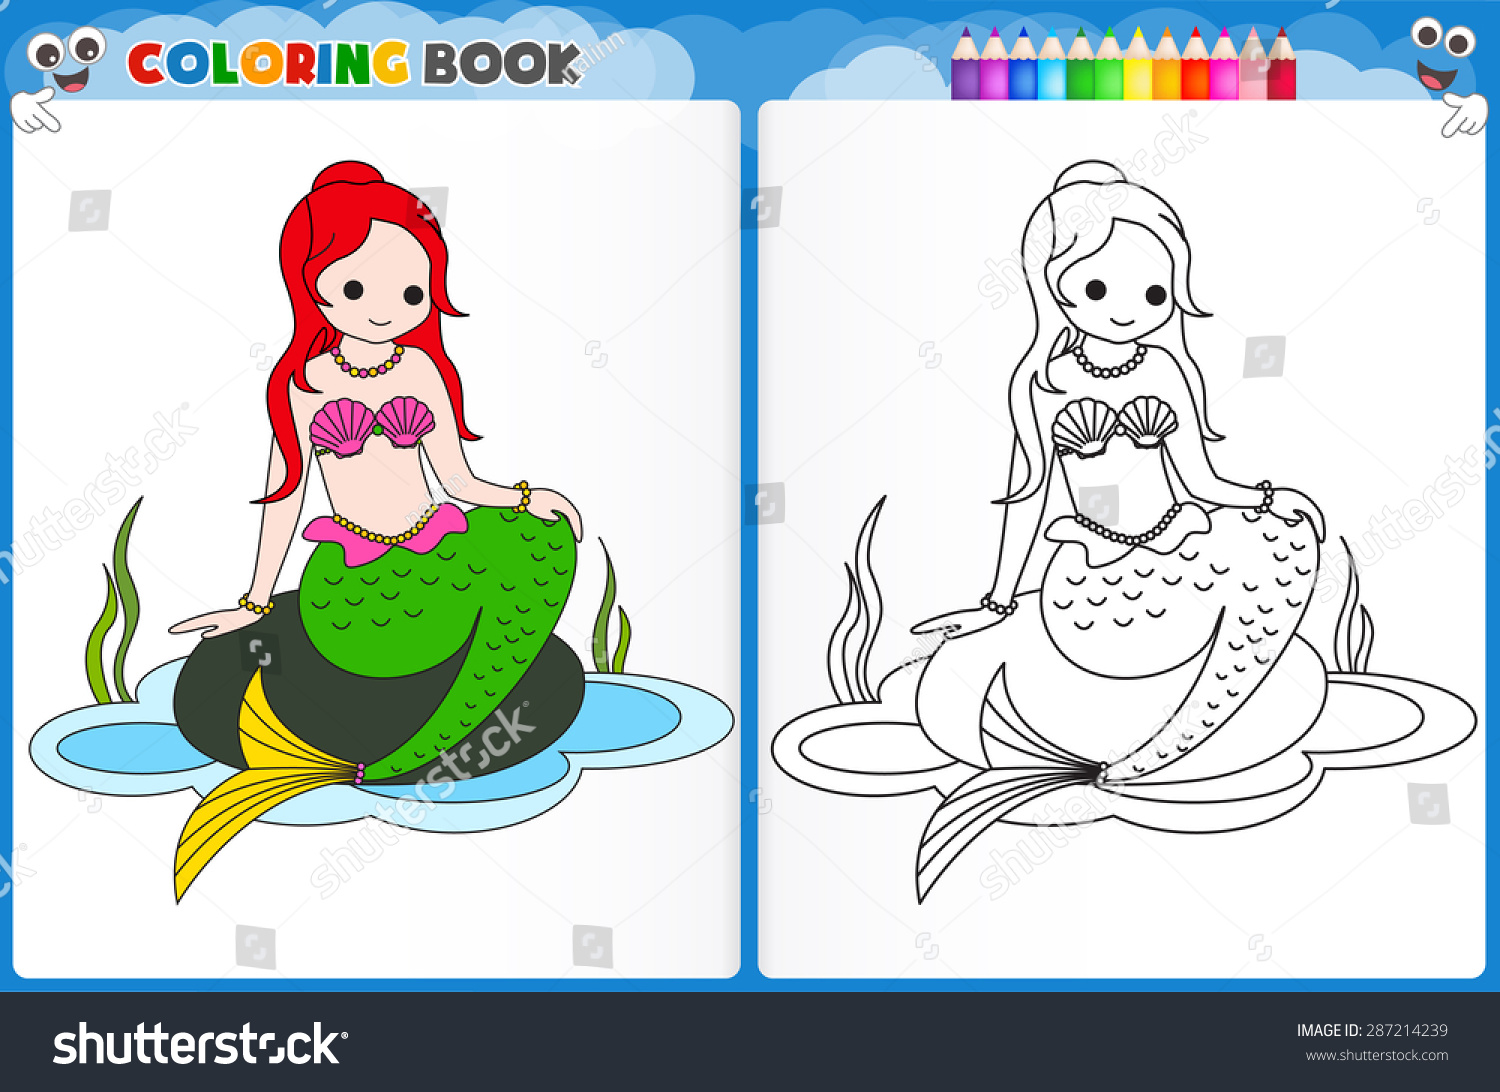 coloring page mermaid colorful sample printable stock vector